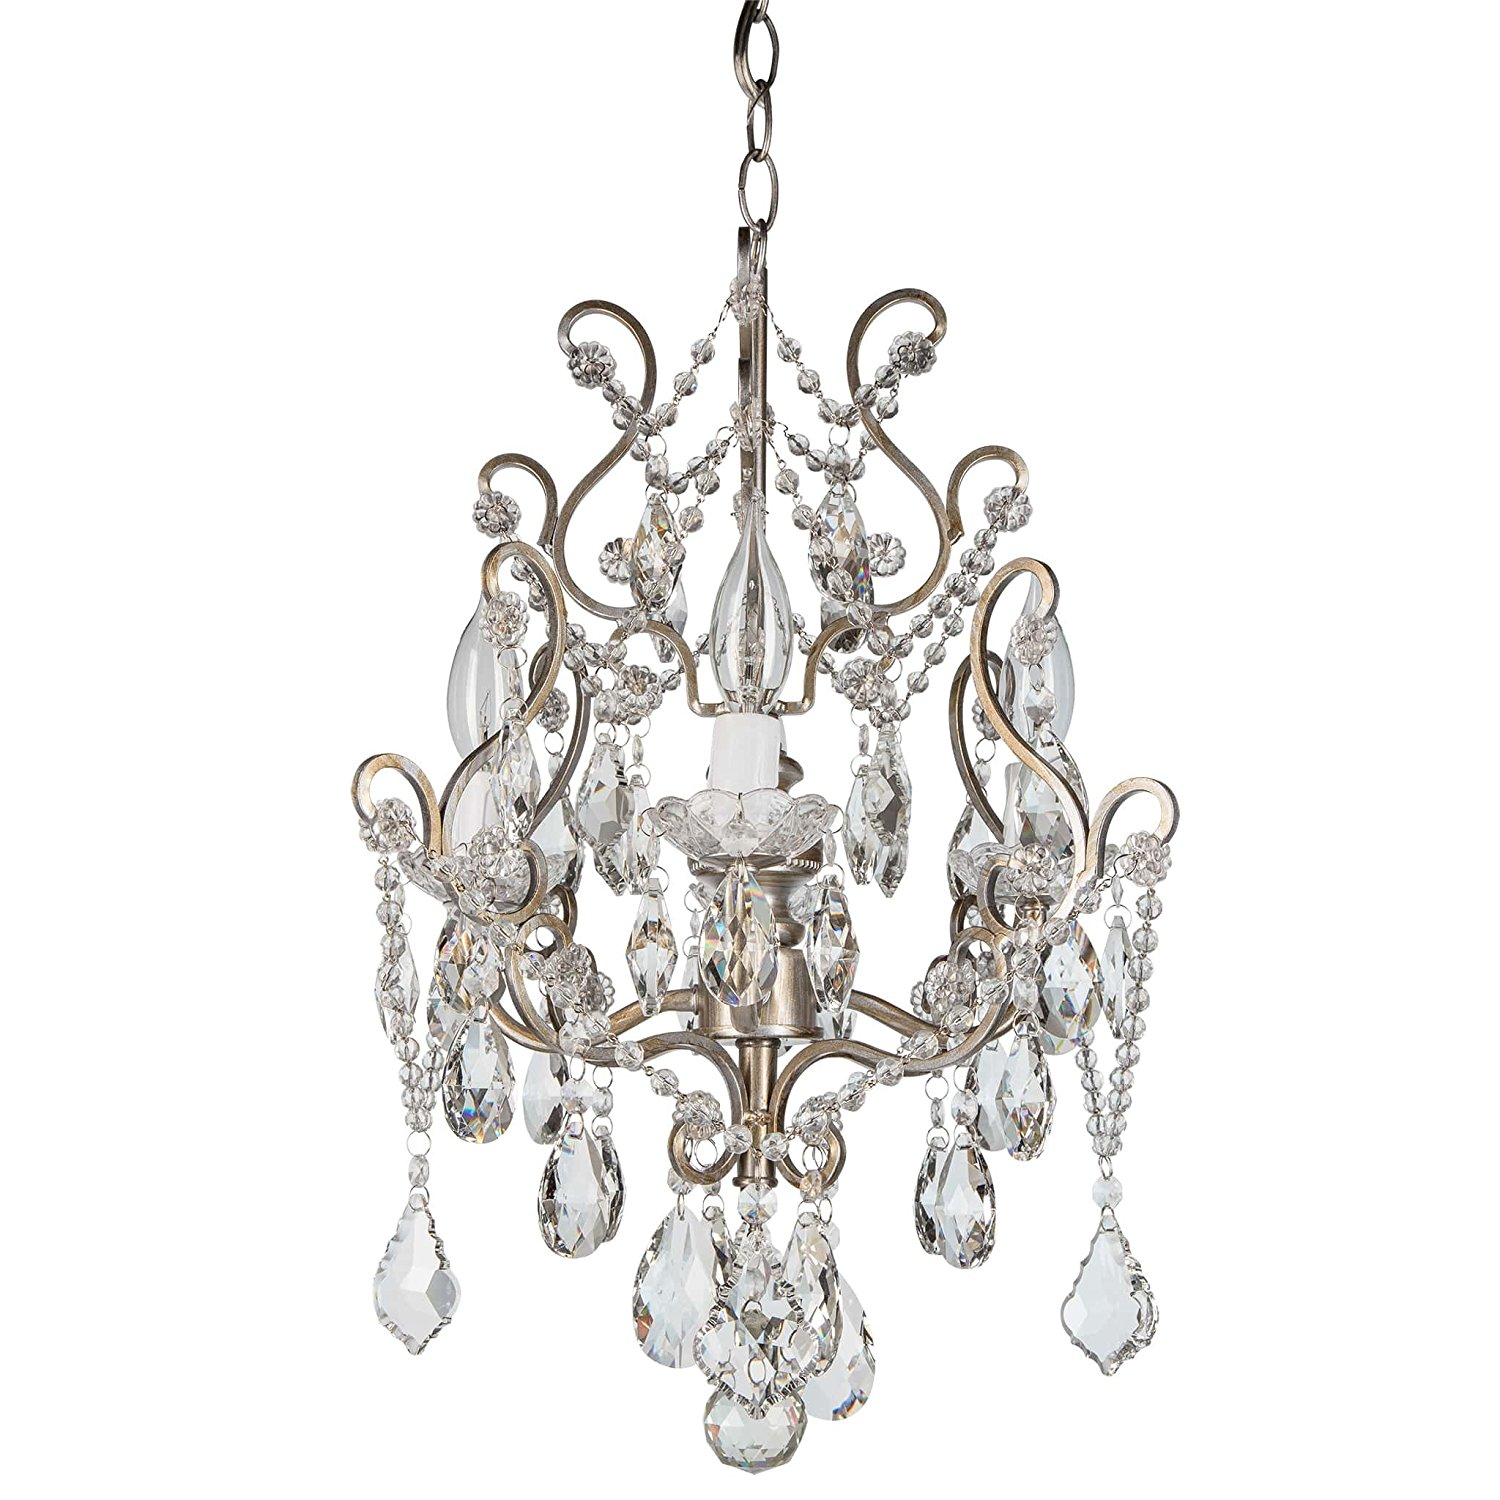 Rustic Chandelier Farmhouse Chandelier Shabby By Makariosdecor: Rustic Shabby Chic Chandeliers, A Guide To The Best Of 2018